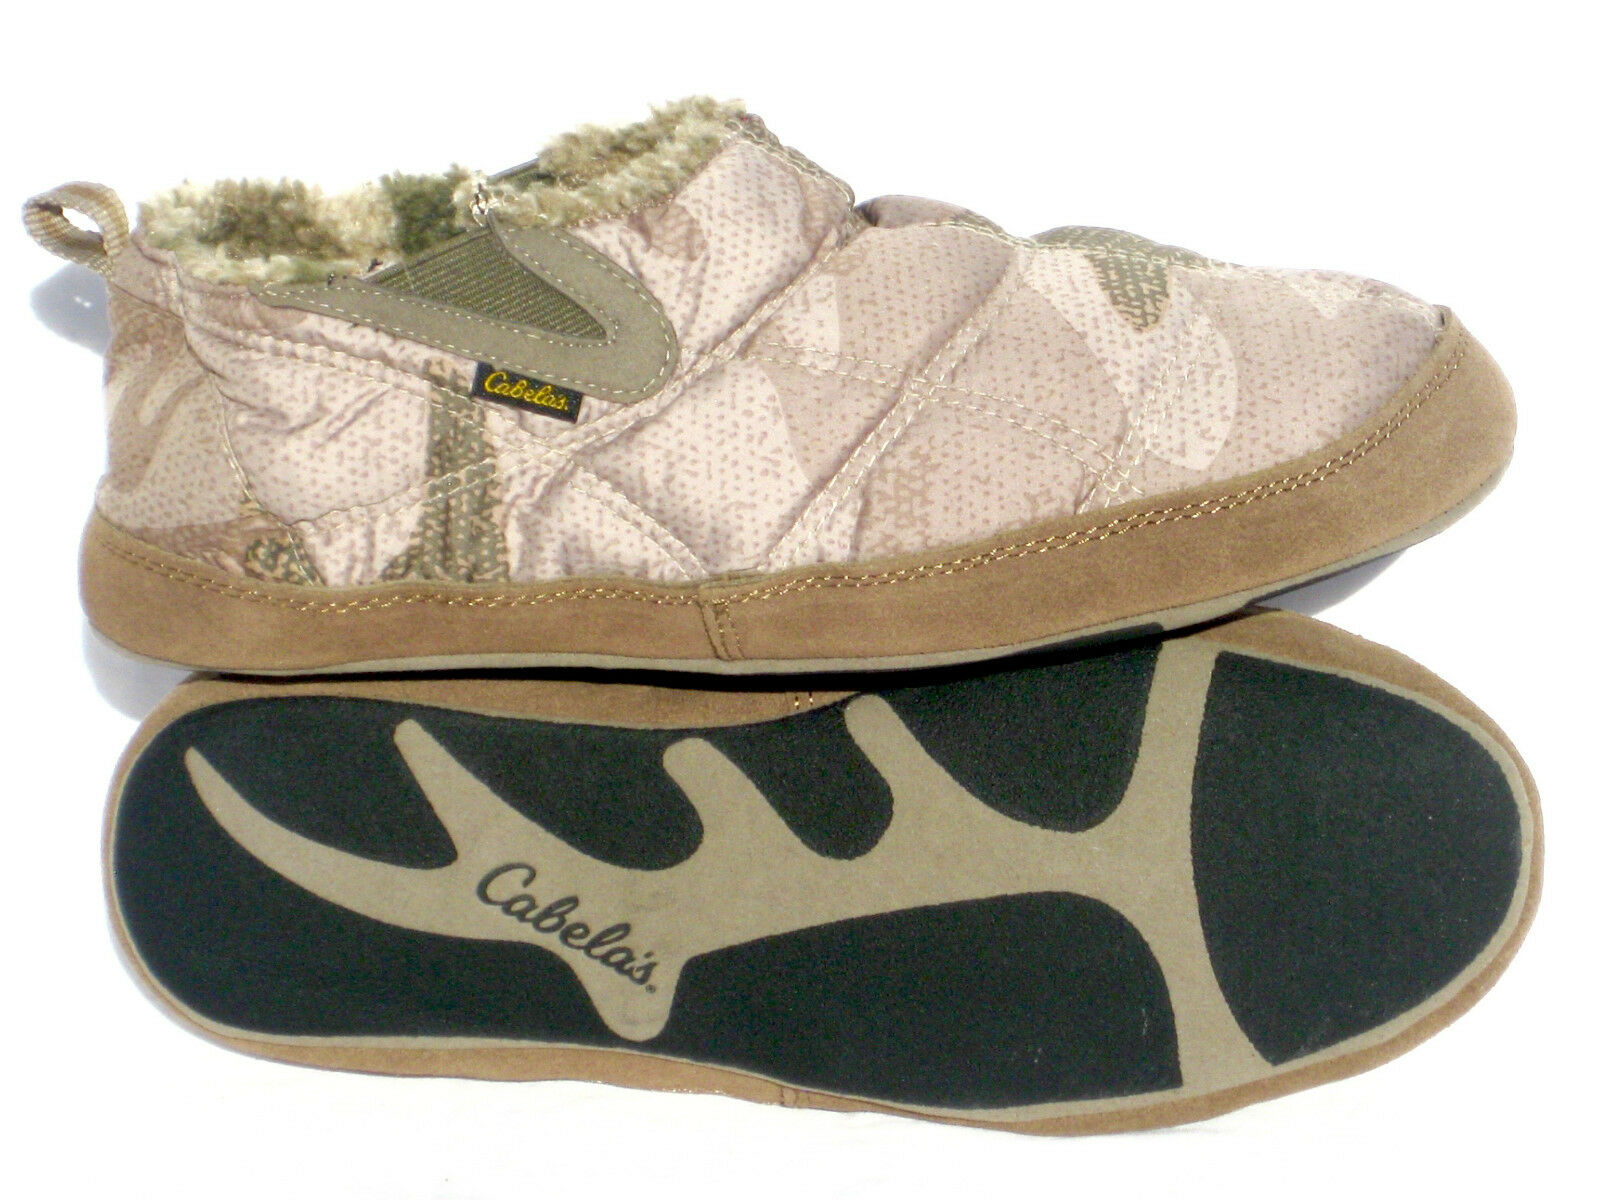 Cabela's Outfitter Camo MicroDown Breathable Warm Cabin Hunting Slippers Booties